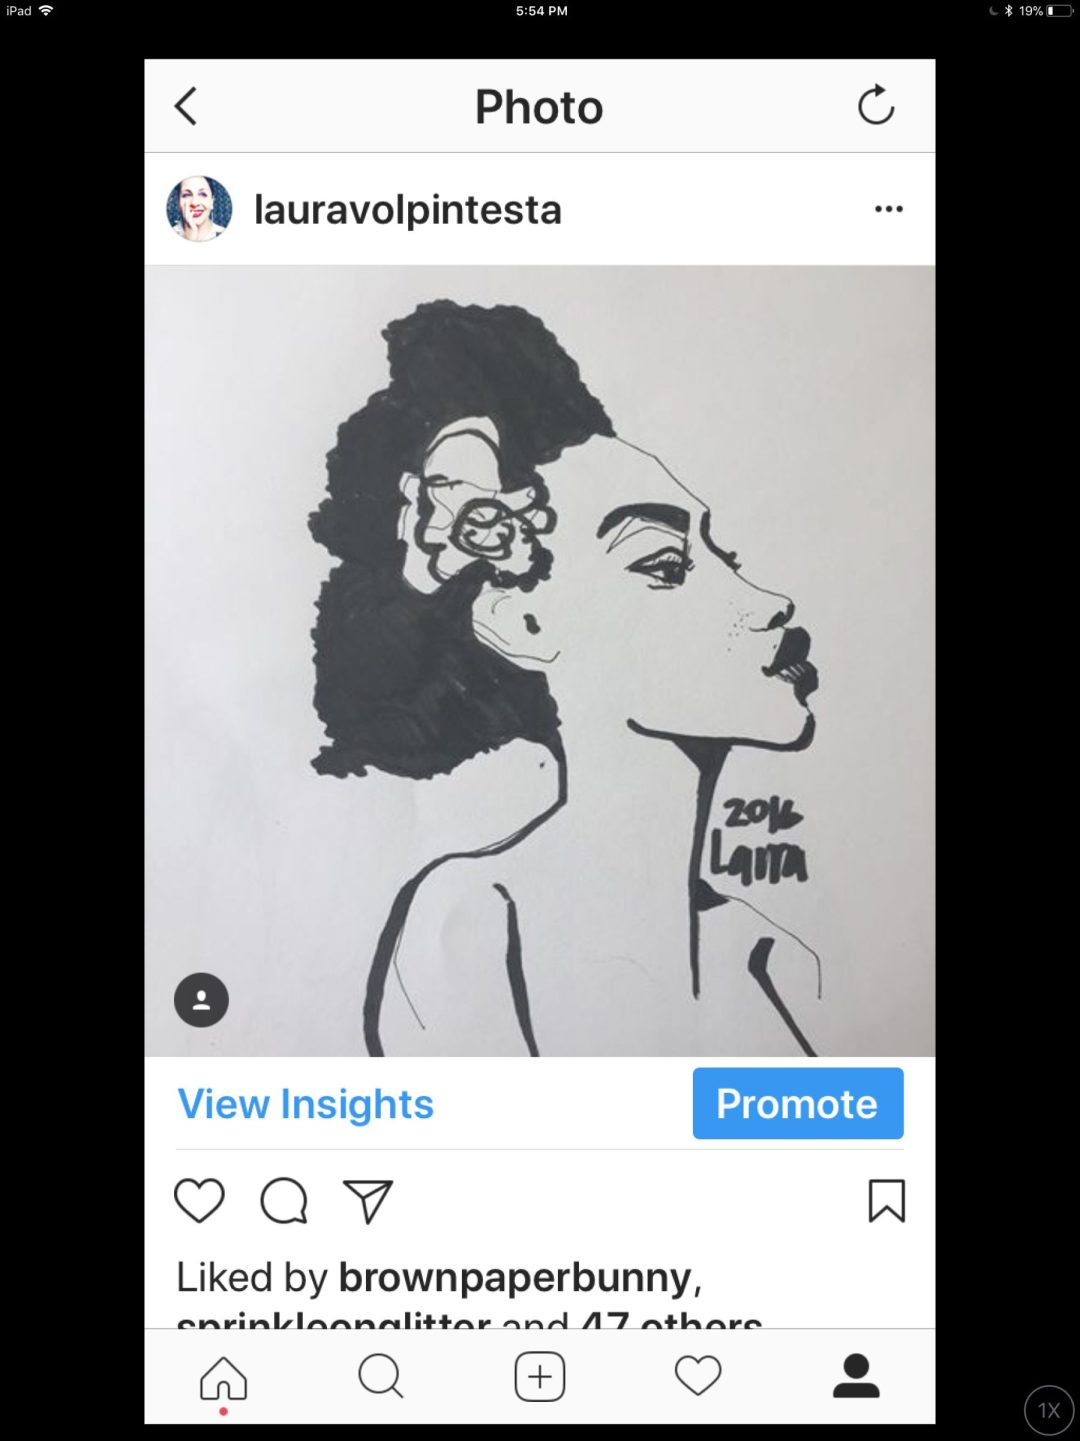 Social Media coloring in Instagram Stories: FASHION ILLUSTRATION BY LAURA VOLPINTESTAhttps://app.ruzuku.com/courses/16304/about